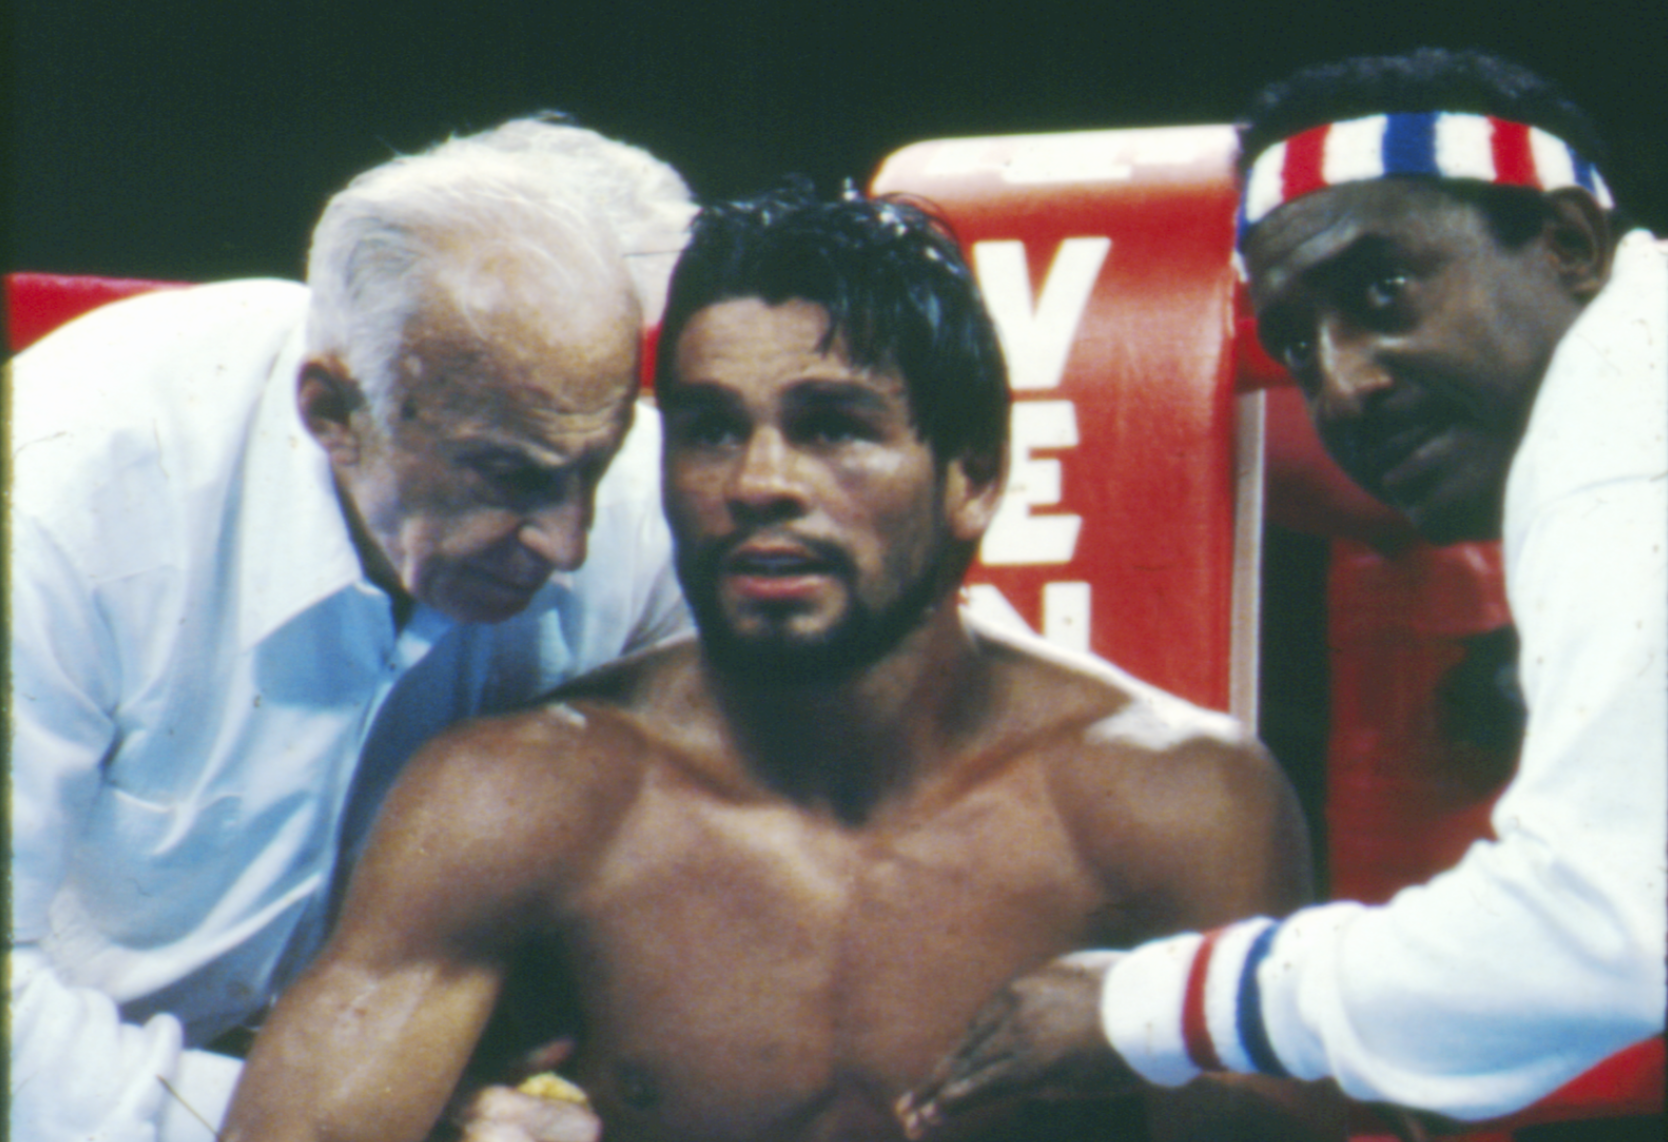 TRAILER: 'I Am Durán' Doc Chronicles the Life and Legend of Panamanian Boxer Roberto Durán